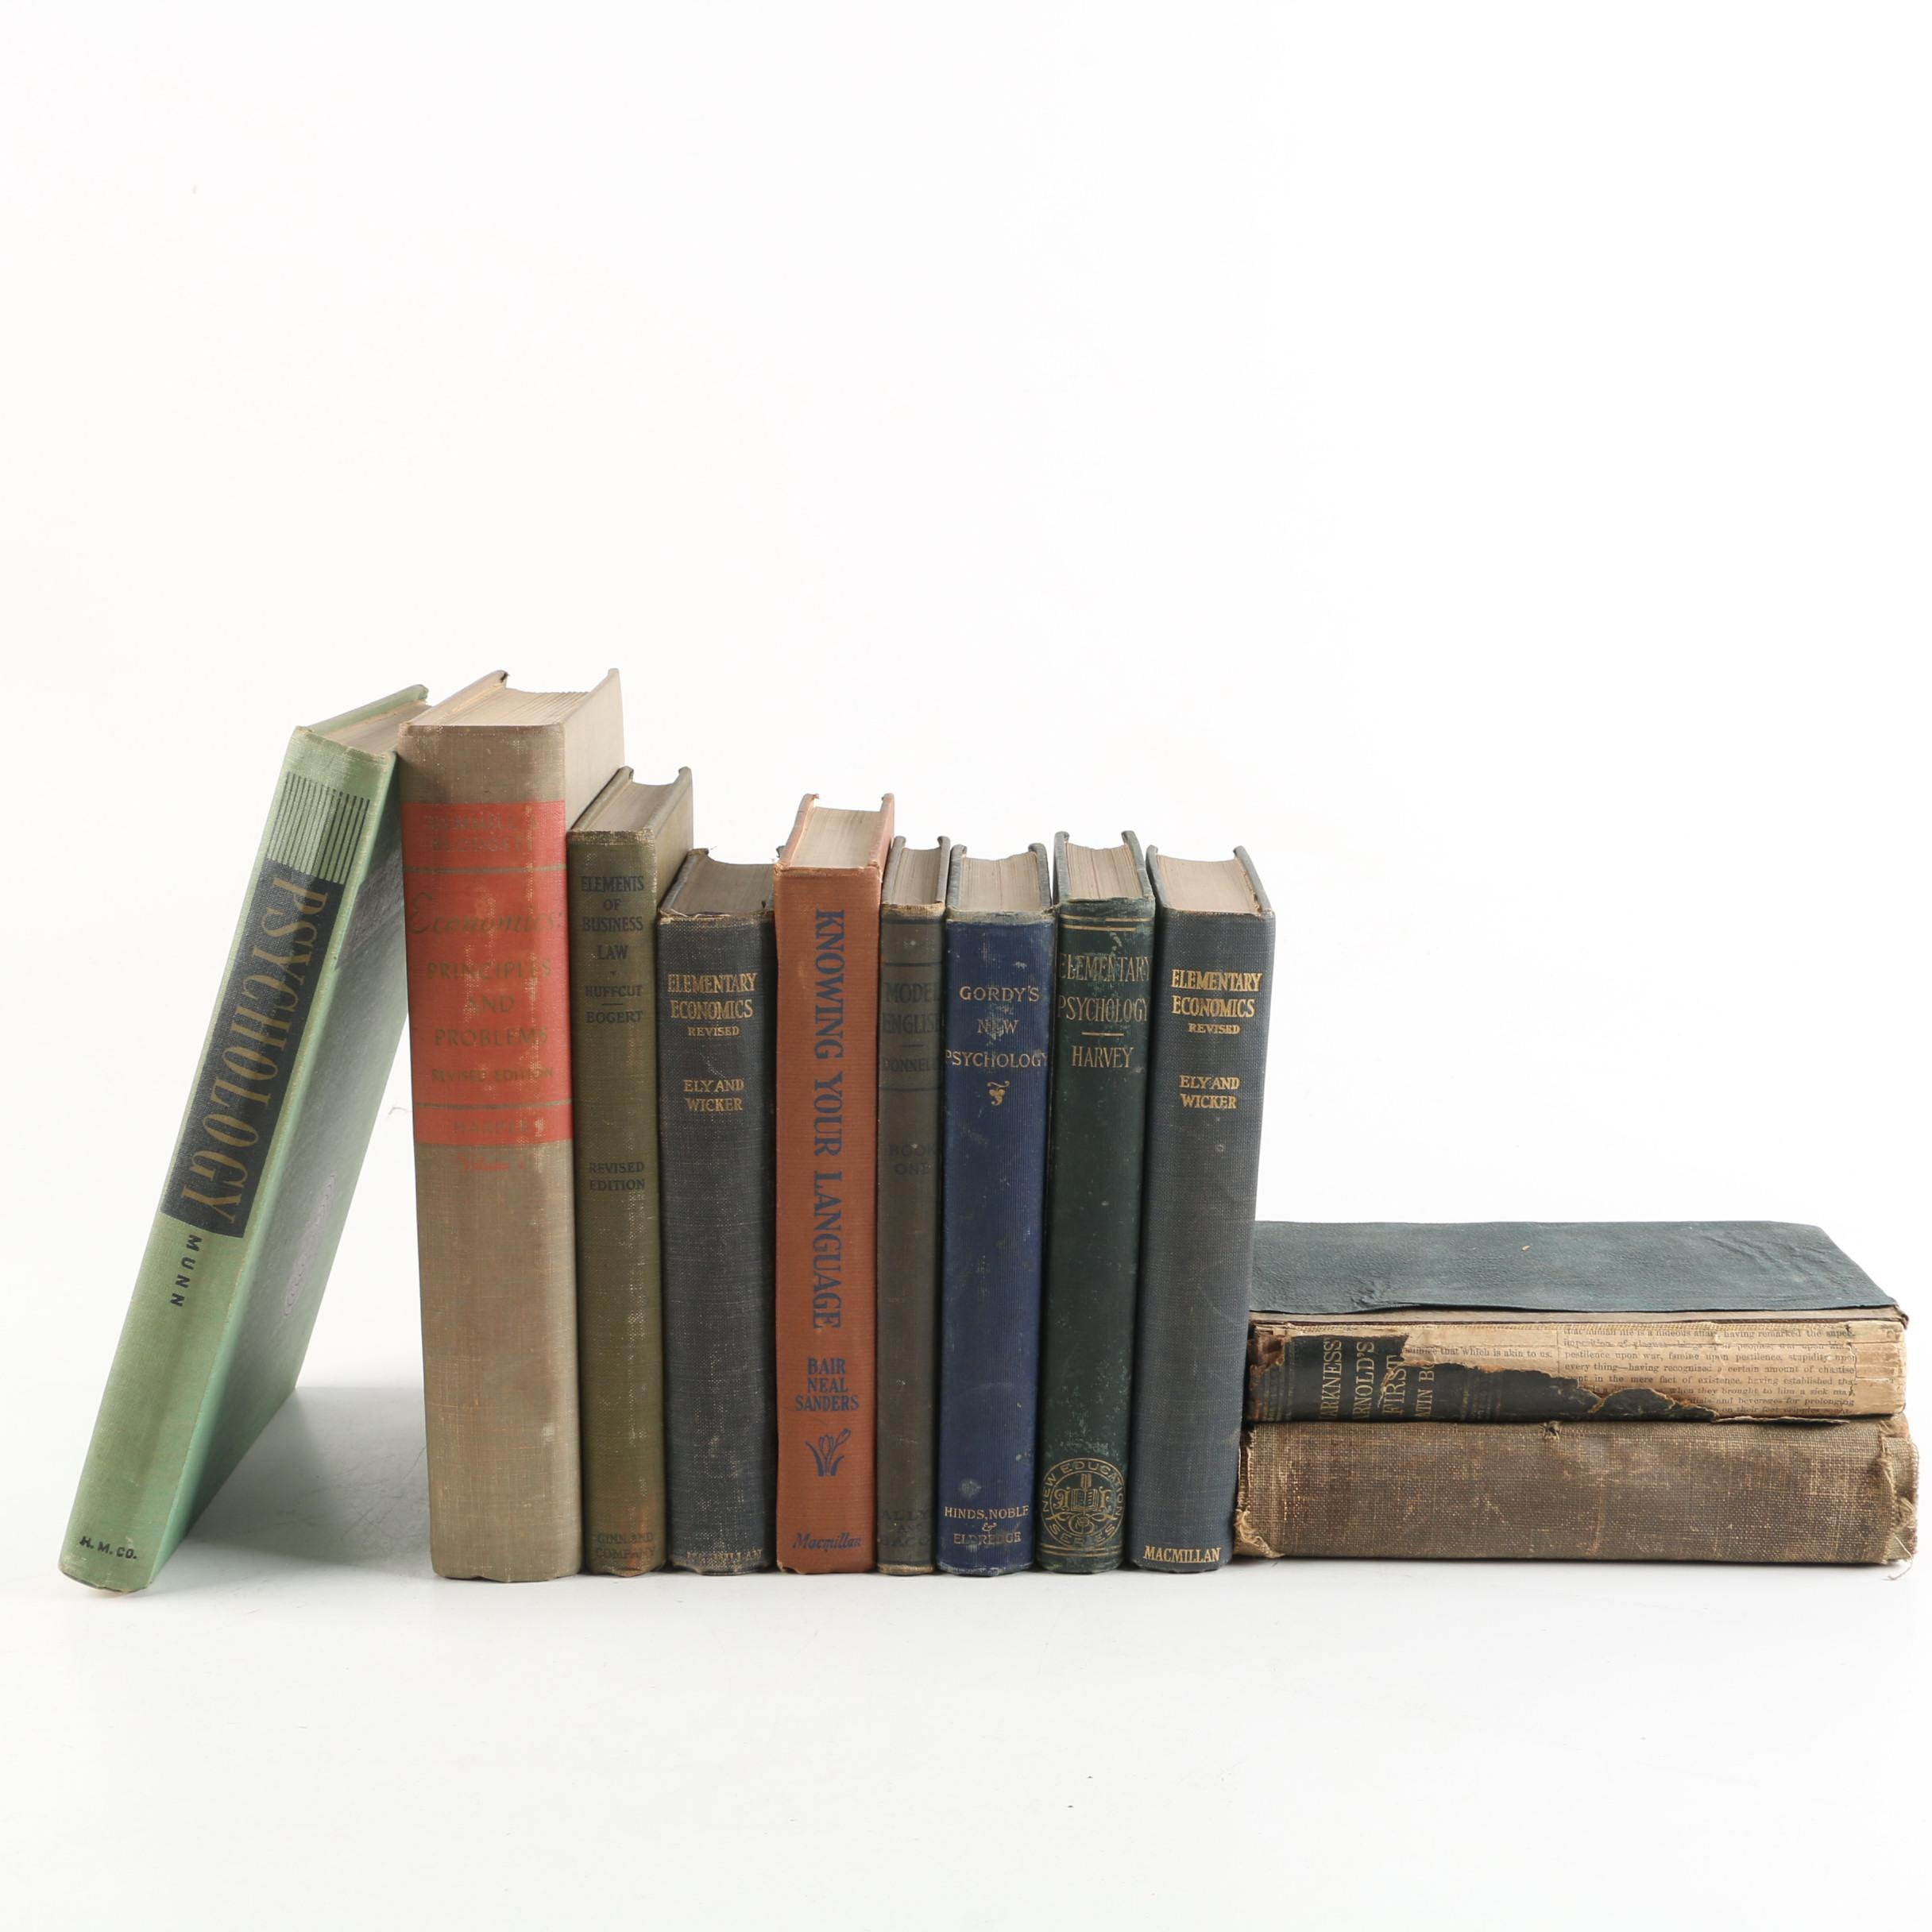 Education and Reference Books including Economics and Psychology